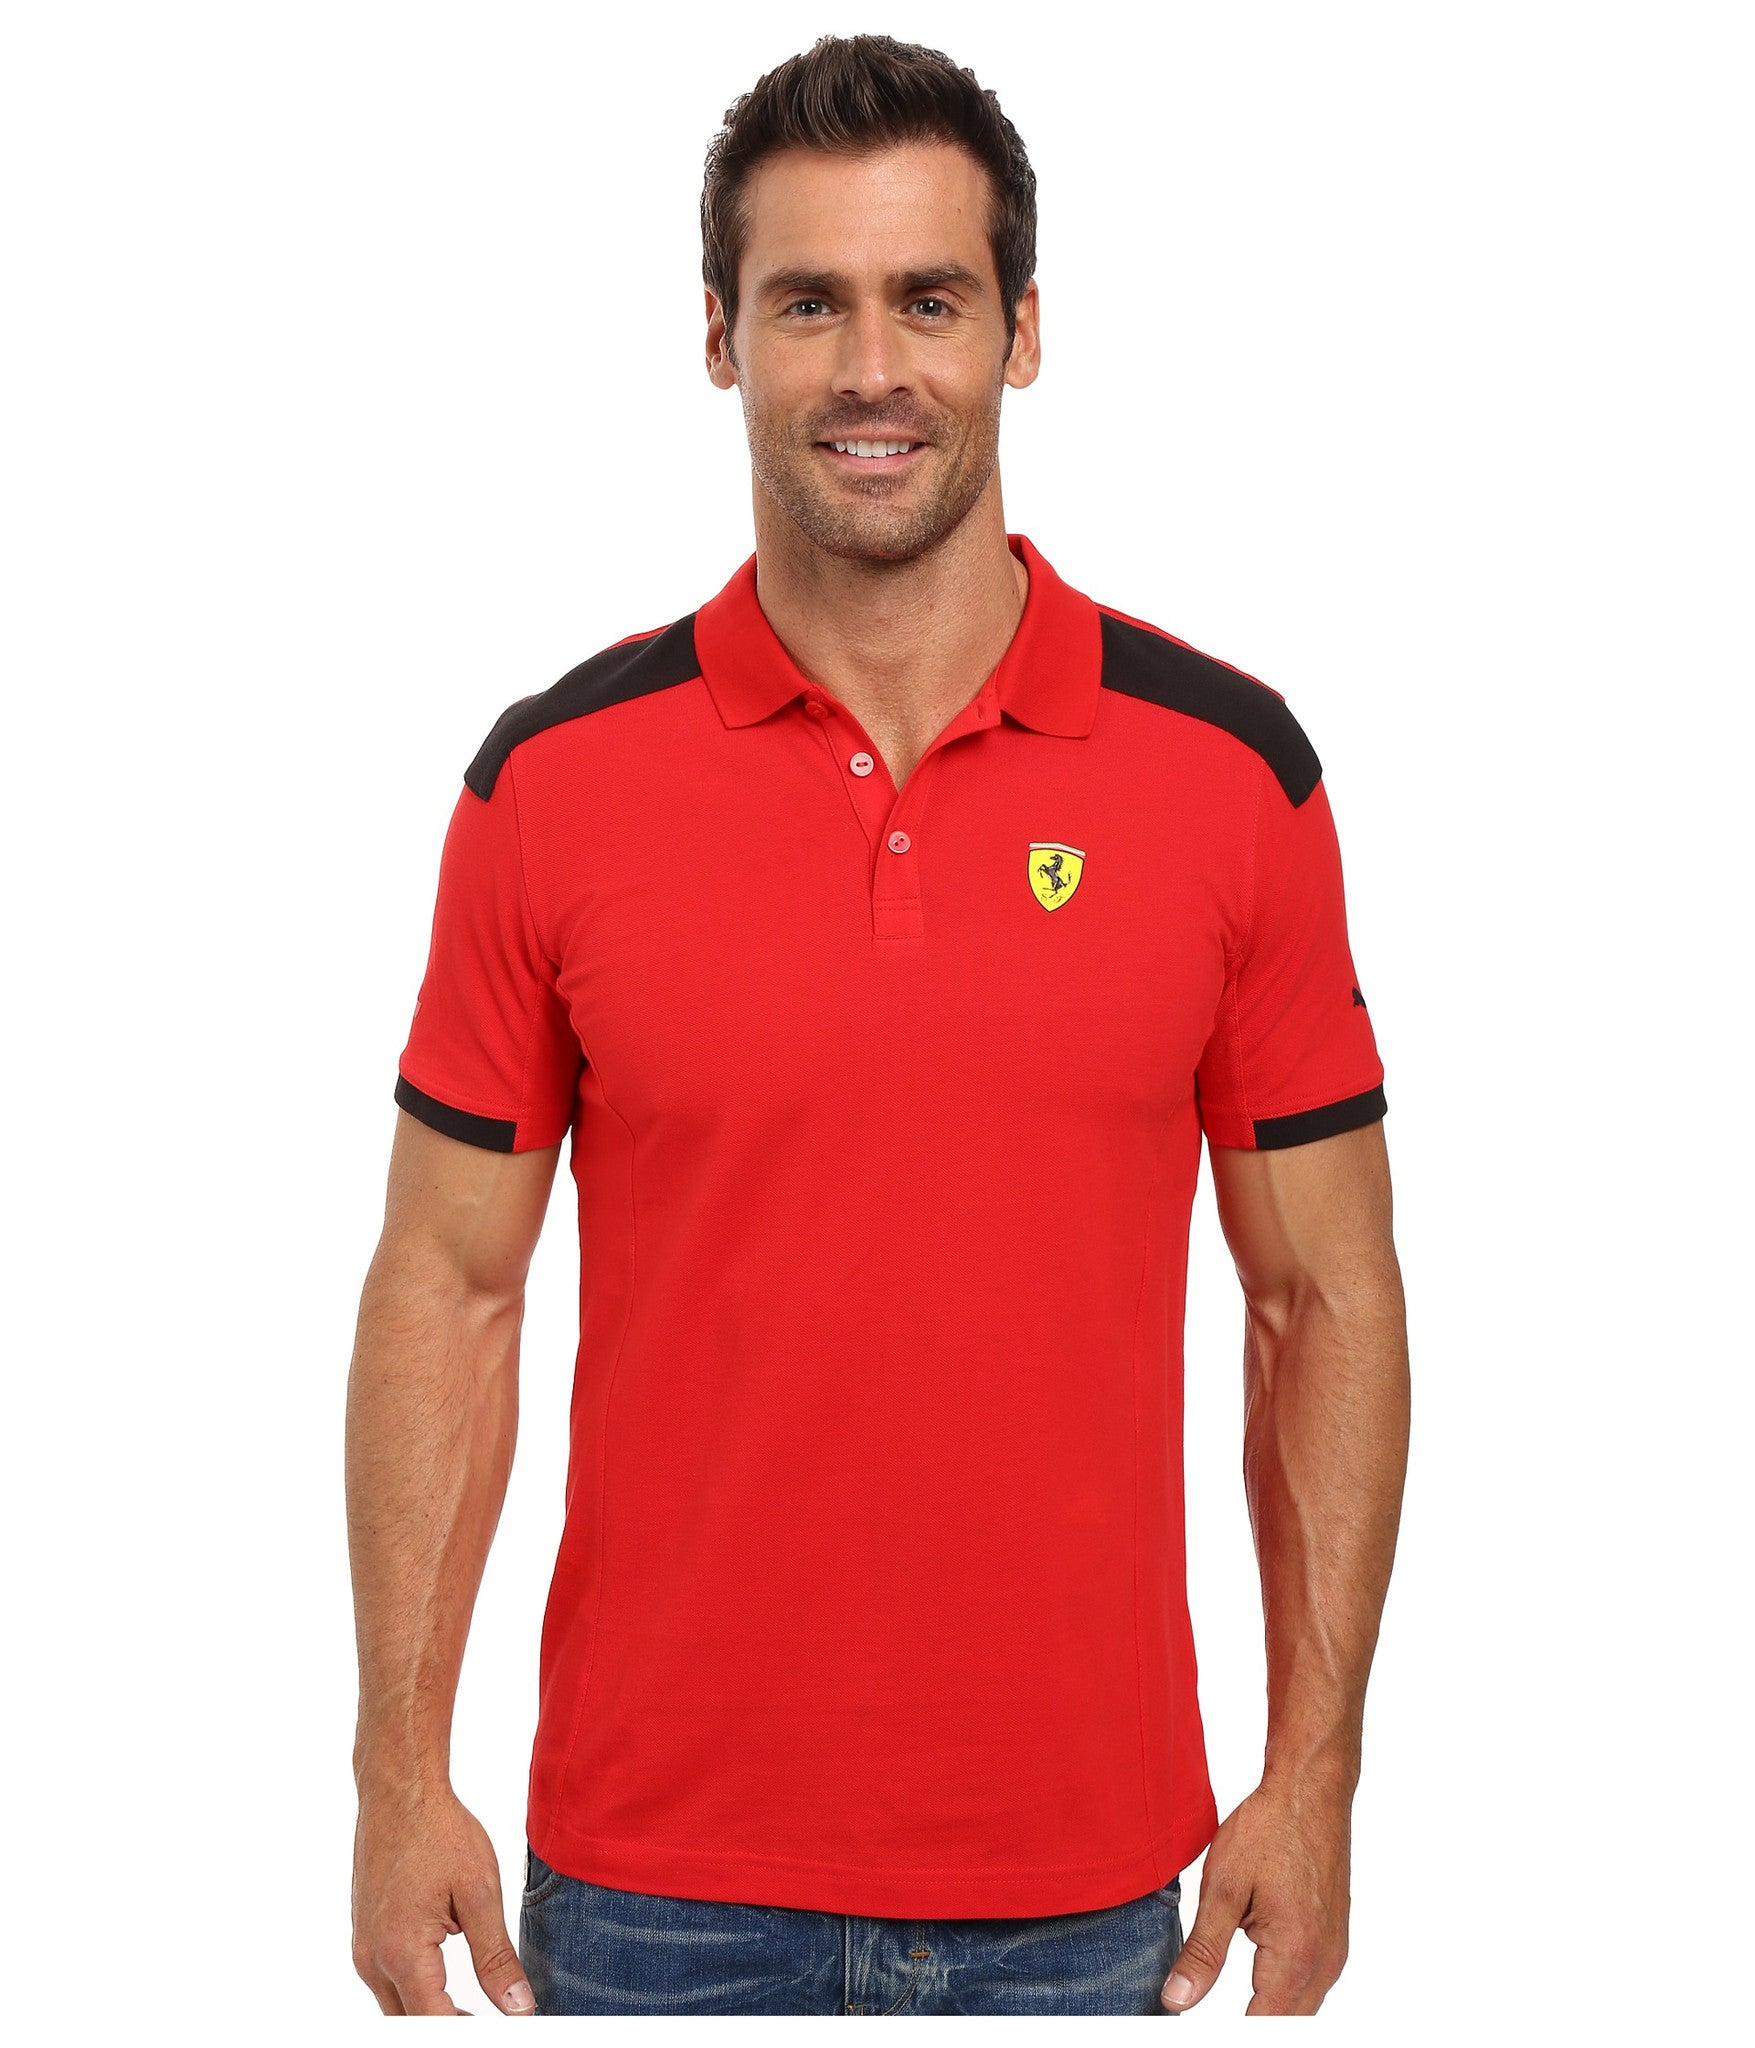 21b0ab3c Puma Mens Ferrari Polo Shirt Red Two Tone Rosso Corsa - Top brand shoes